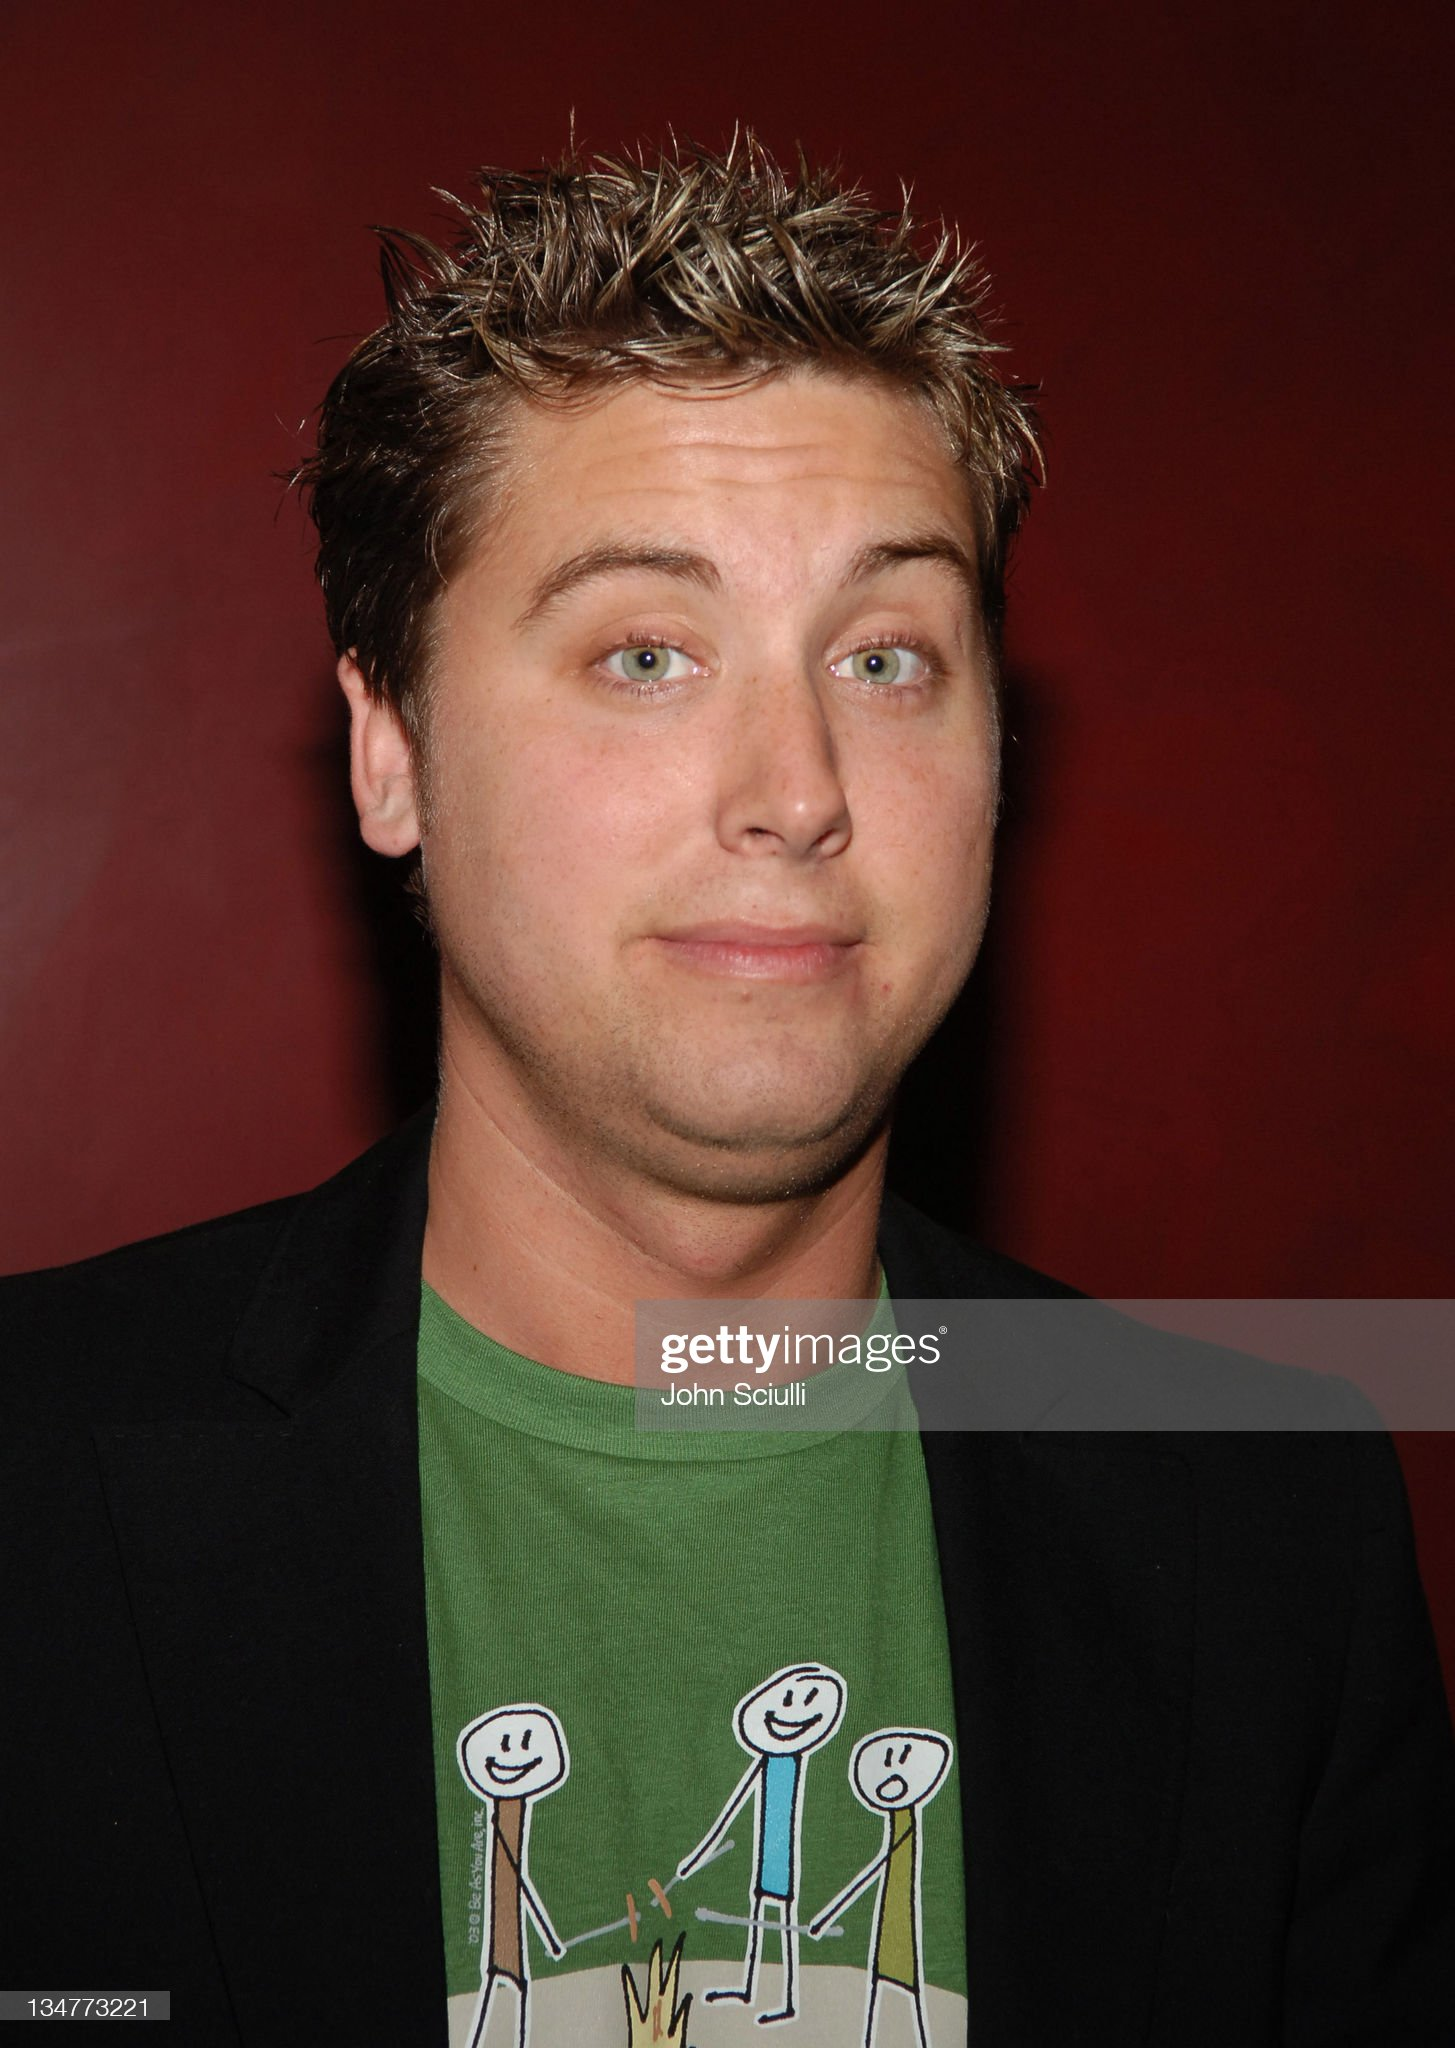 Ojos verdes - Famosas y famosos con los ojos de color VERDE Lance-bass-during-lions-gate-films-presents-in-the-mix-special-cast-picture-id134773221?s=2048x2048